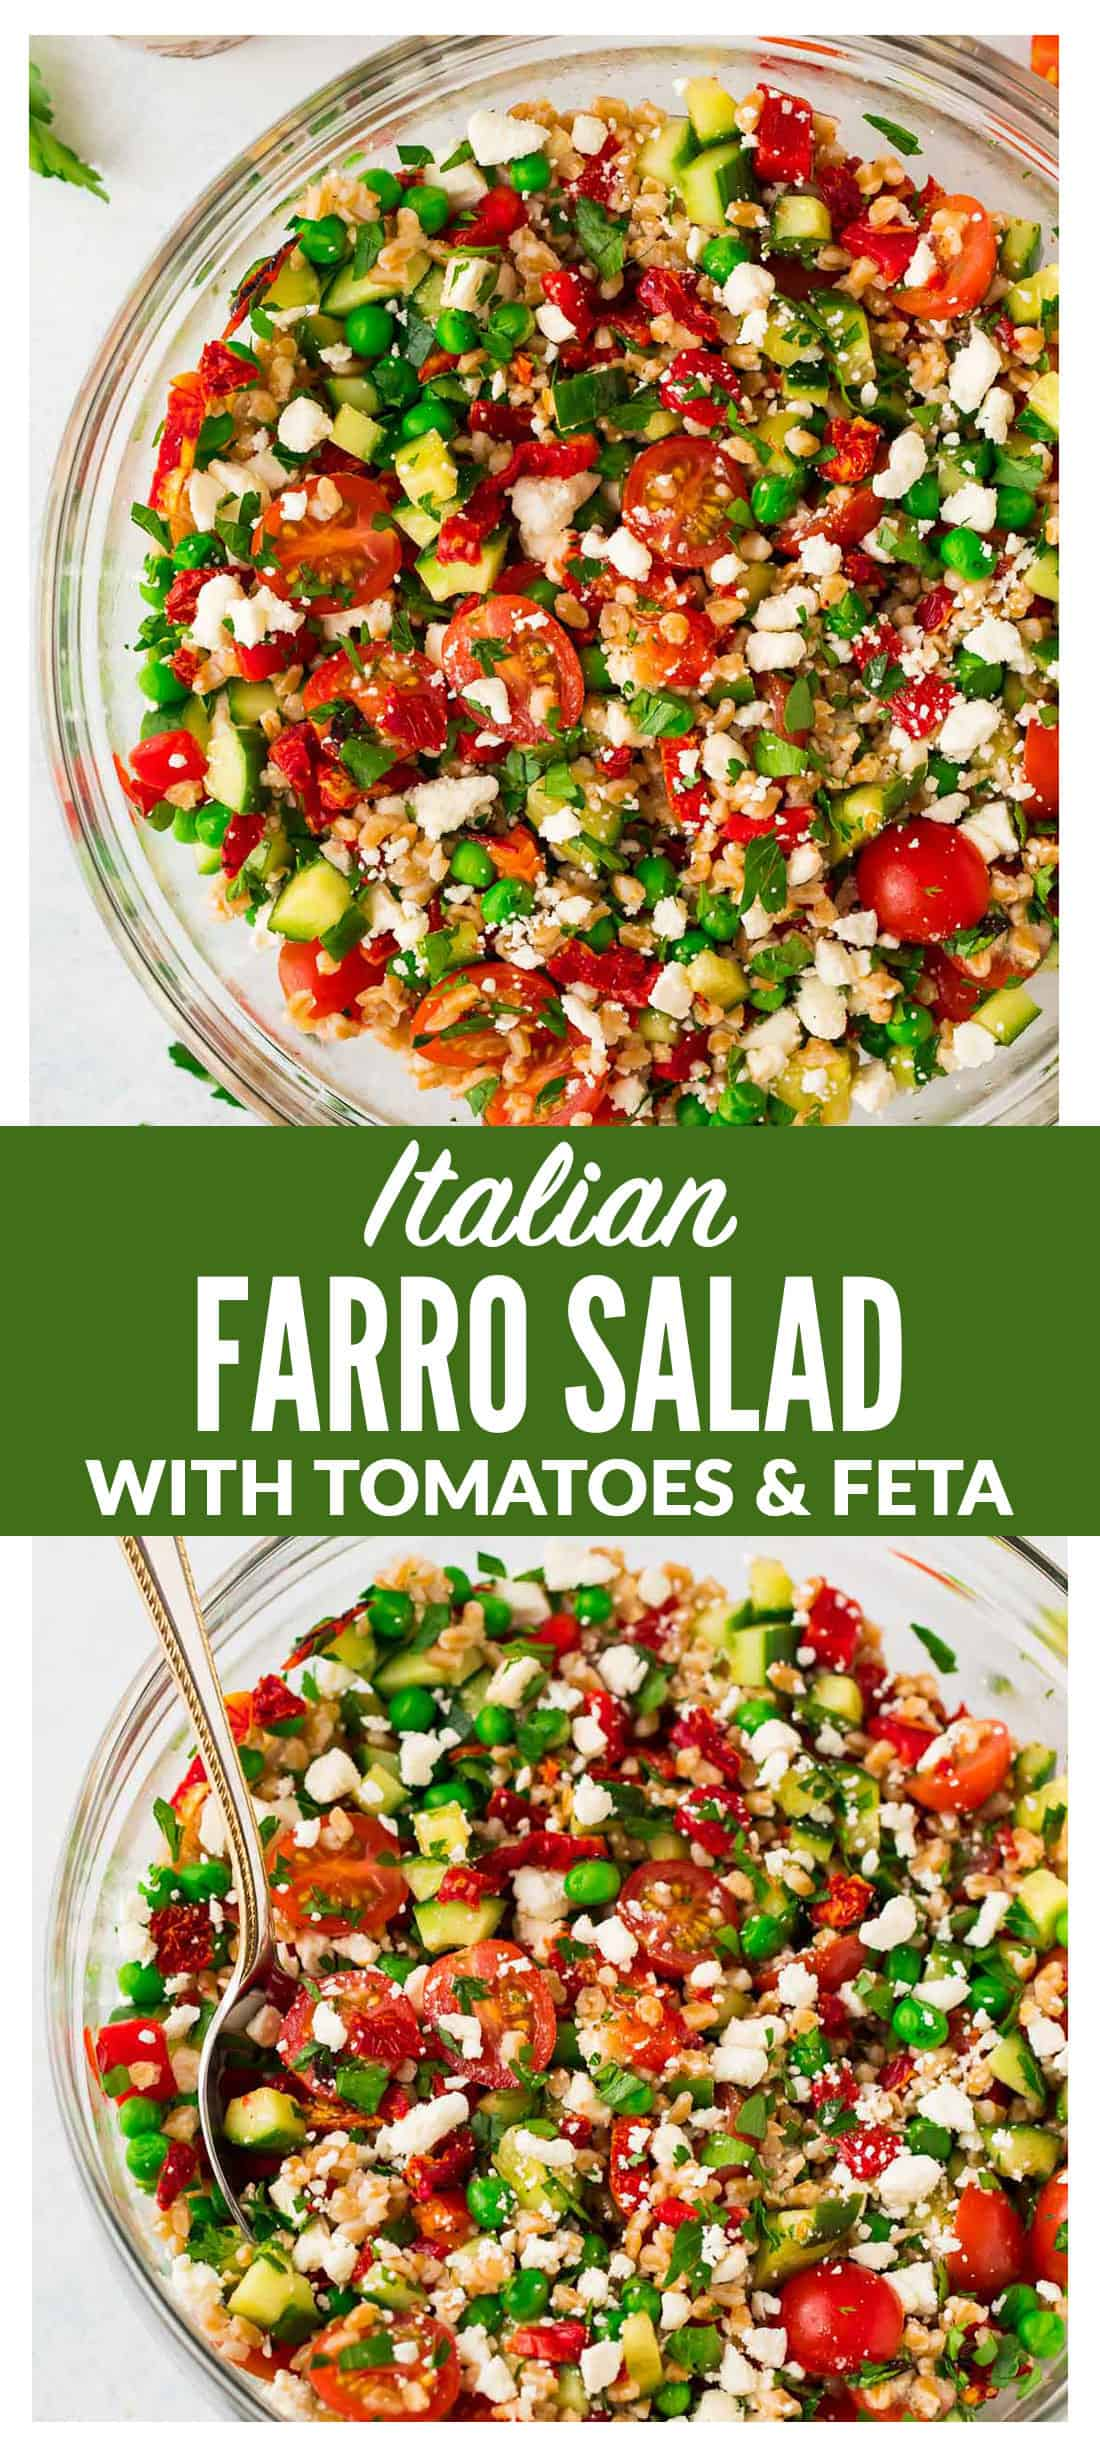 Italian Farro Salad with feta, fresh tomatoes, veggies, and a bright red wine vinaigrette. Delicious, filling vegetarian recipe that's perfect for healthy meal prep. Big enough for a crowd and tastes great leftover and at room temperature, so it's a perfect potluck and barbecue side dish recipe too! #italian #farro #salad #healthy